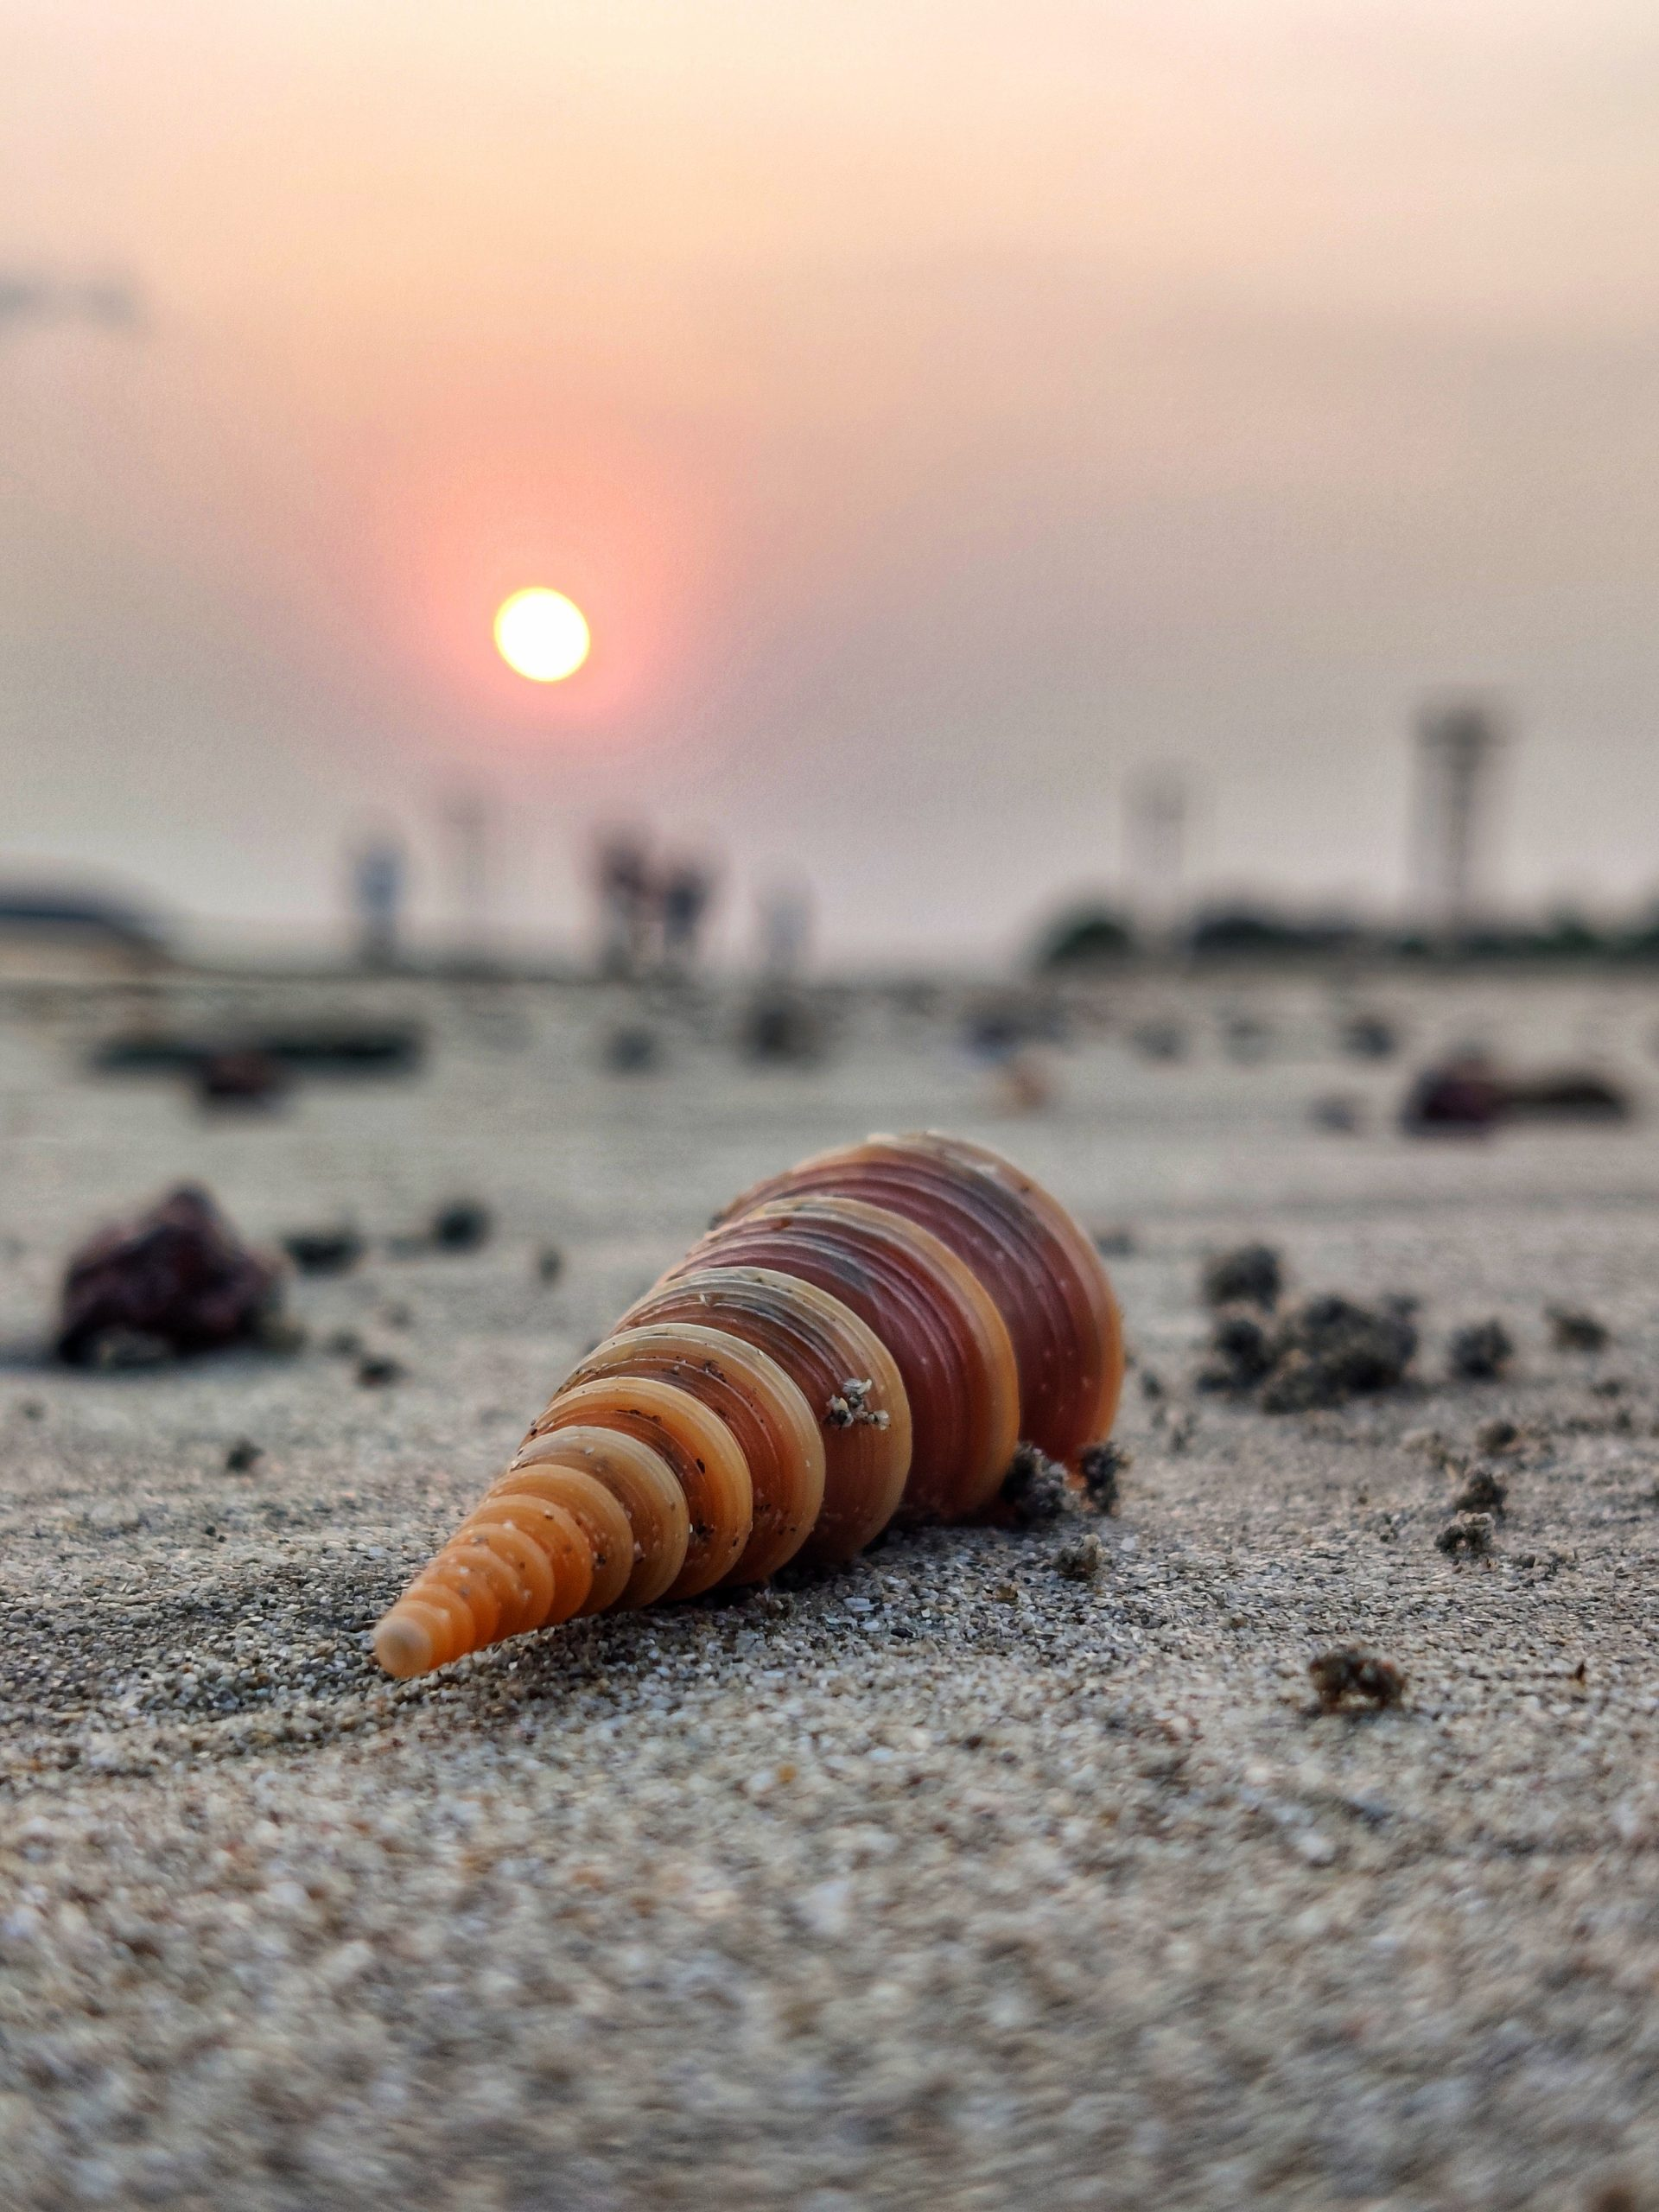 Sea shell in sunlight